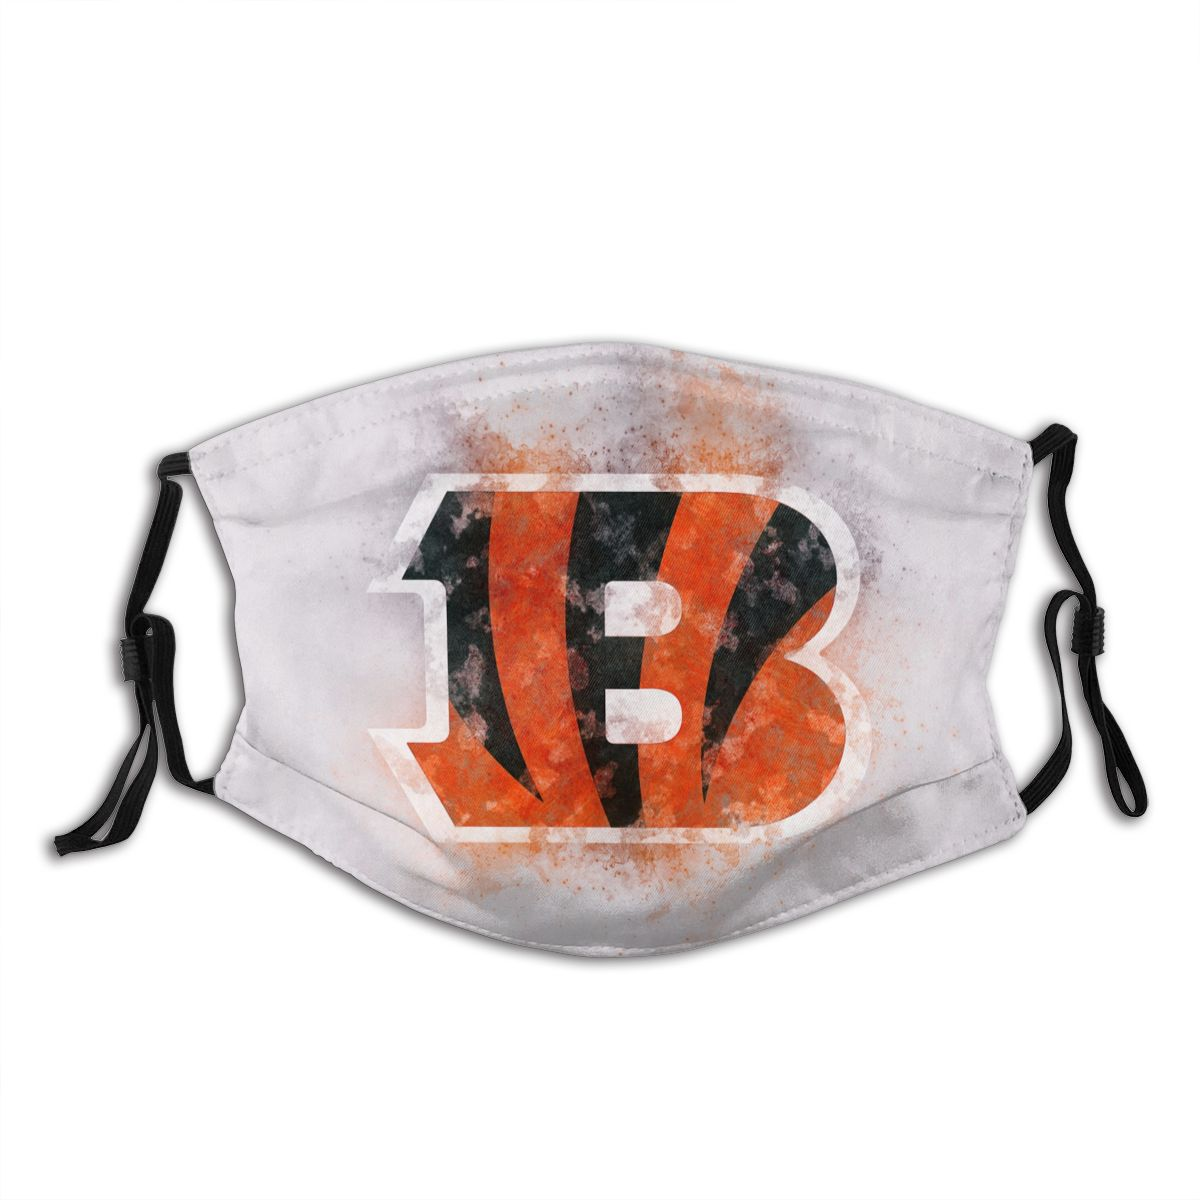 Bengals Logo Adult Cloth Face Covering With Filter